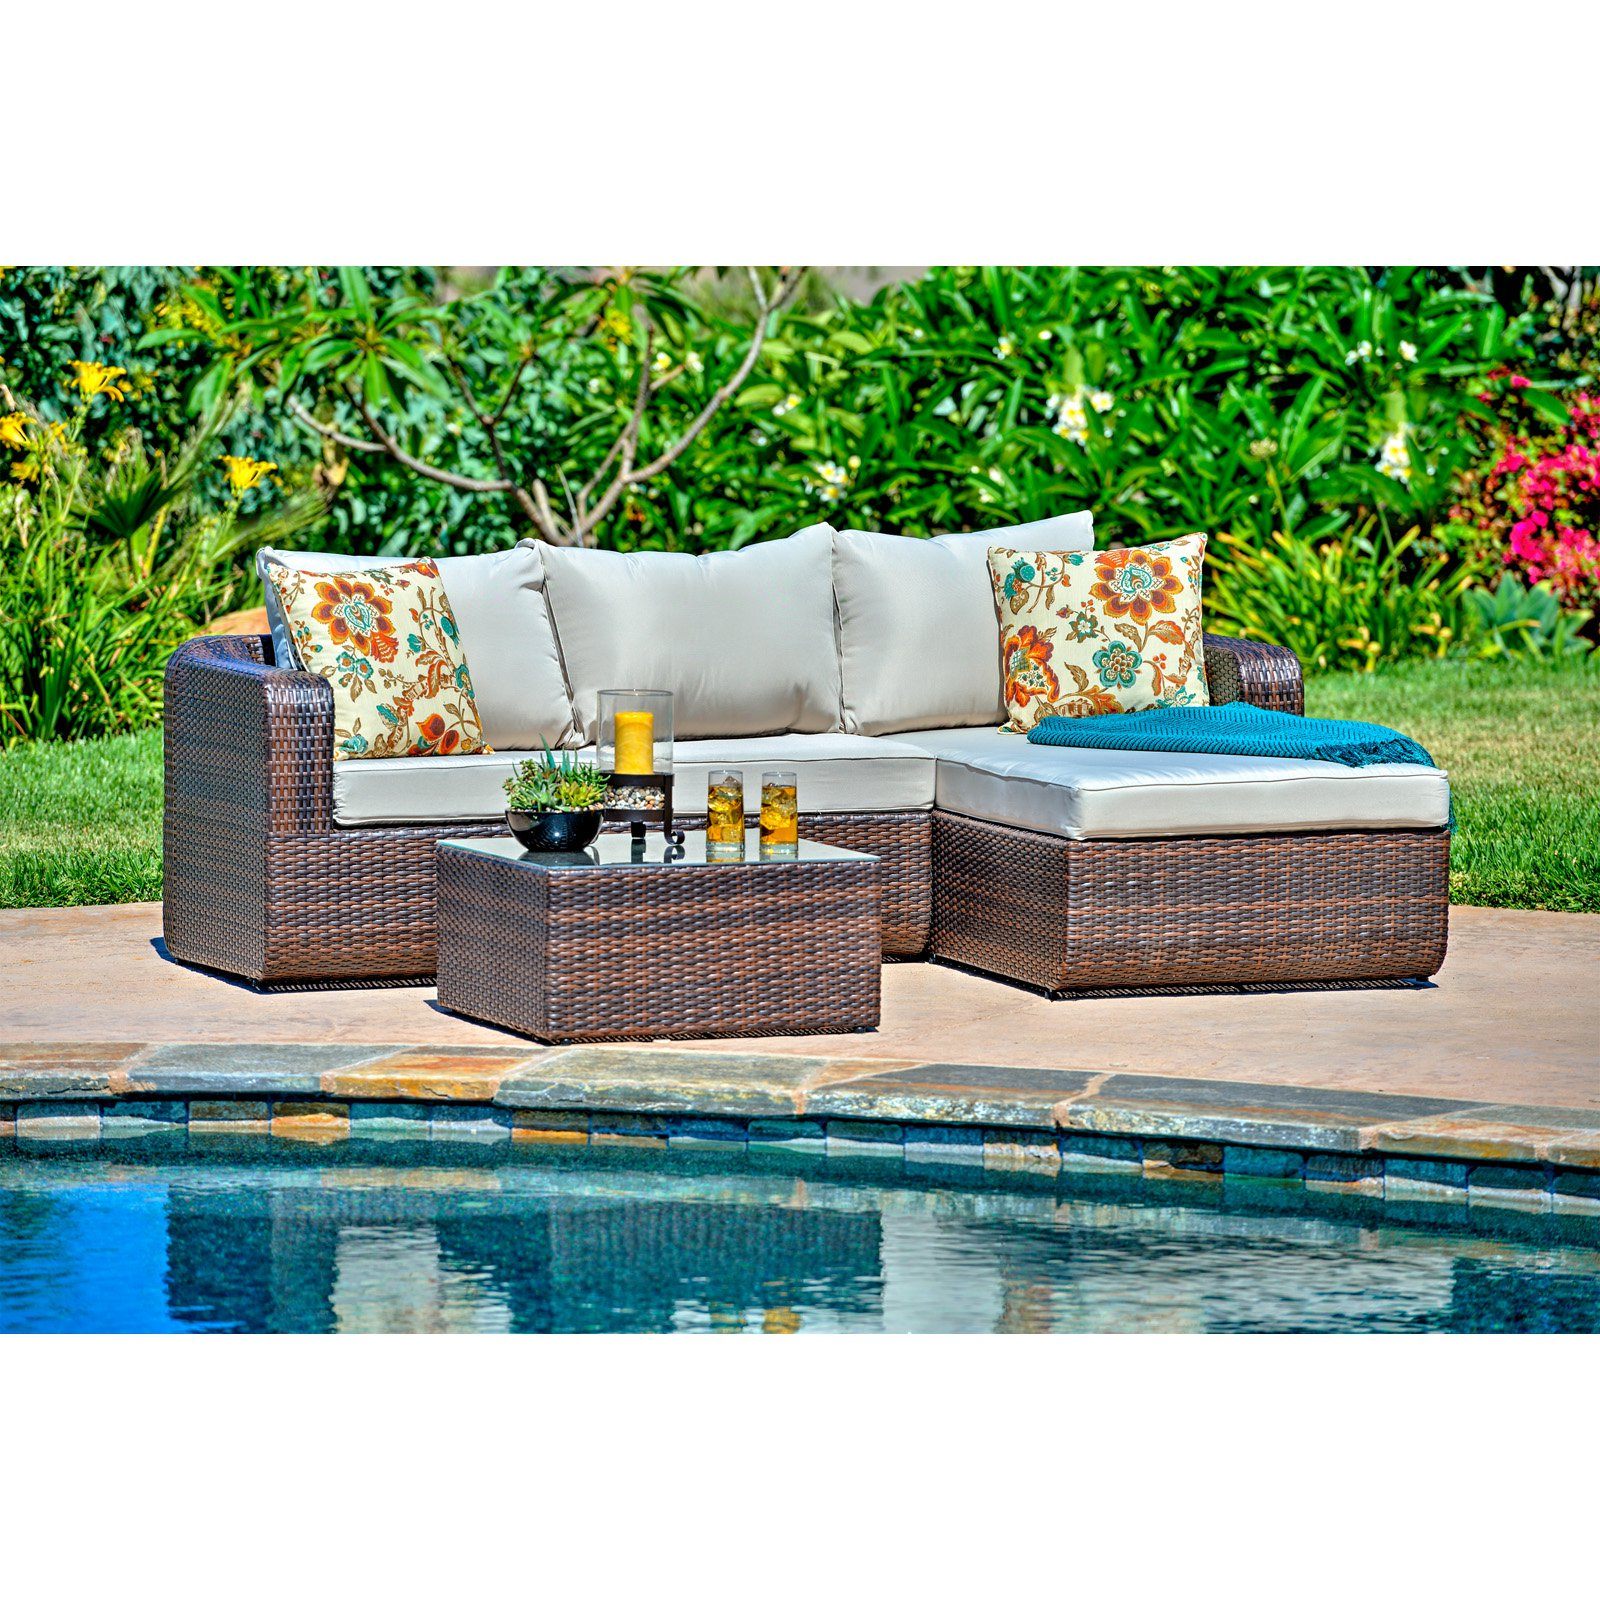 Thy-Hom Luies Wicker 3 Piece All-Weather Patio Conversation Set by Wicker Furniture